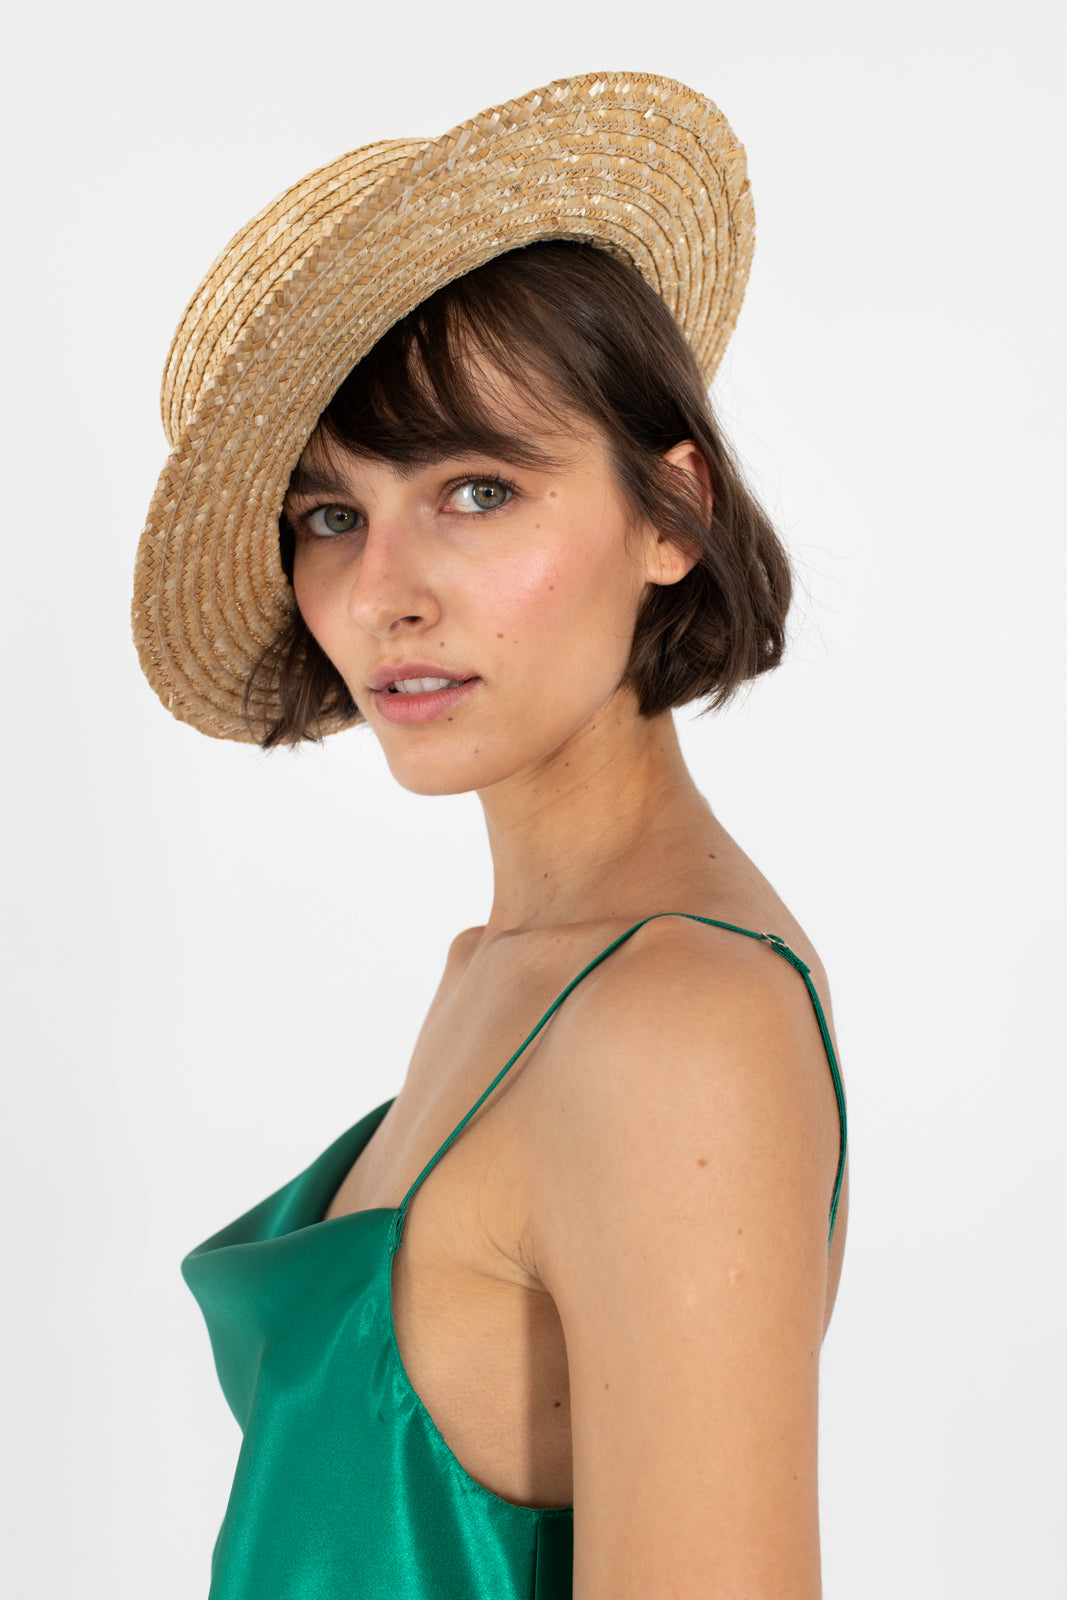 le-slap-fashion-summer-hat-inspo-natural-straw-make-up